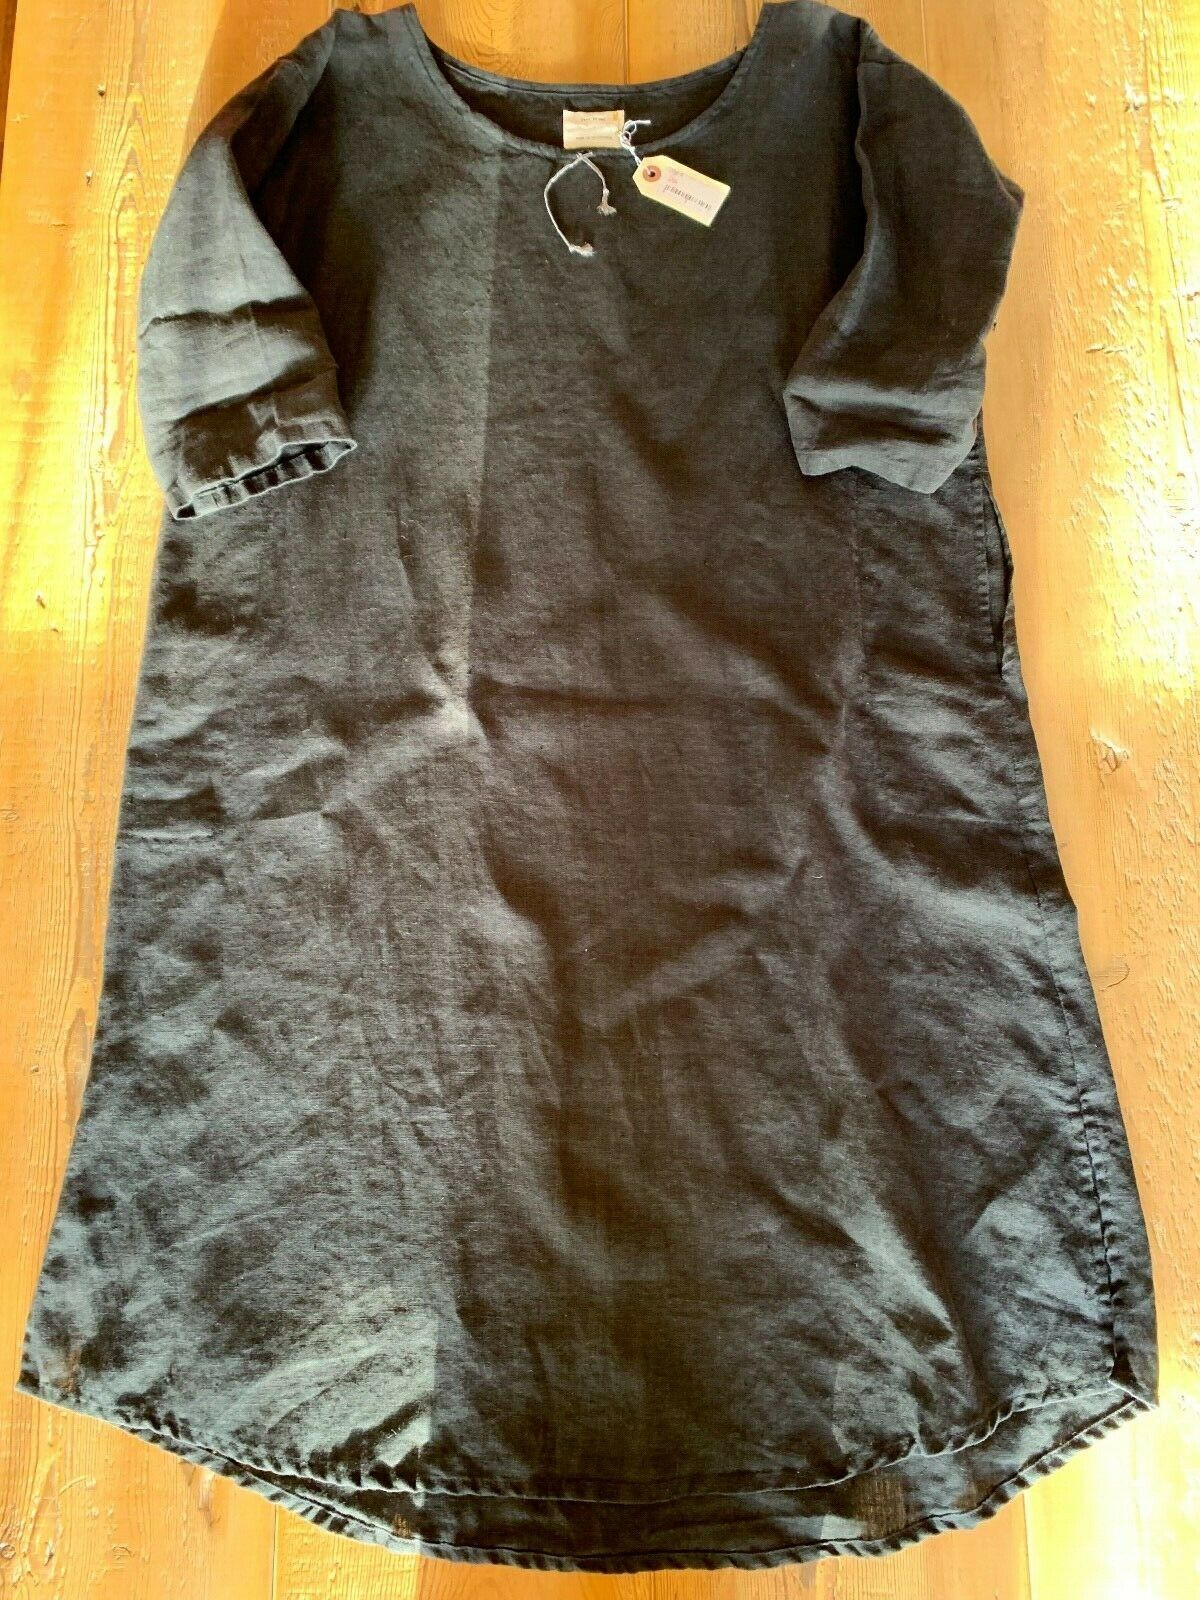 Jess Brown Gardener's Dress, Black Raw Linen, NWT, Size 1 (Women's S)